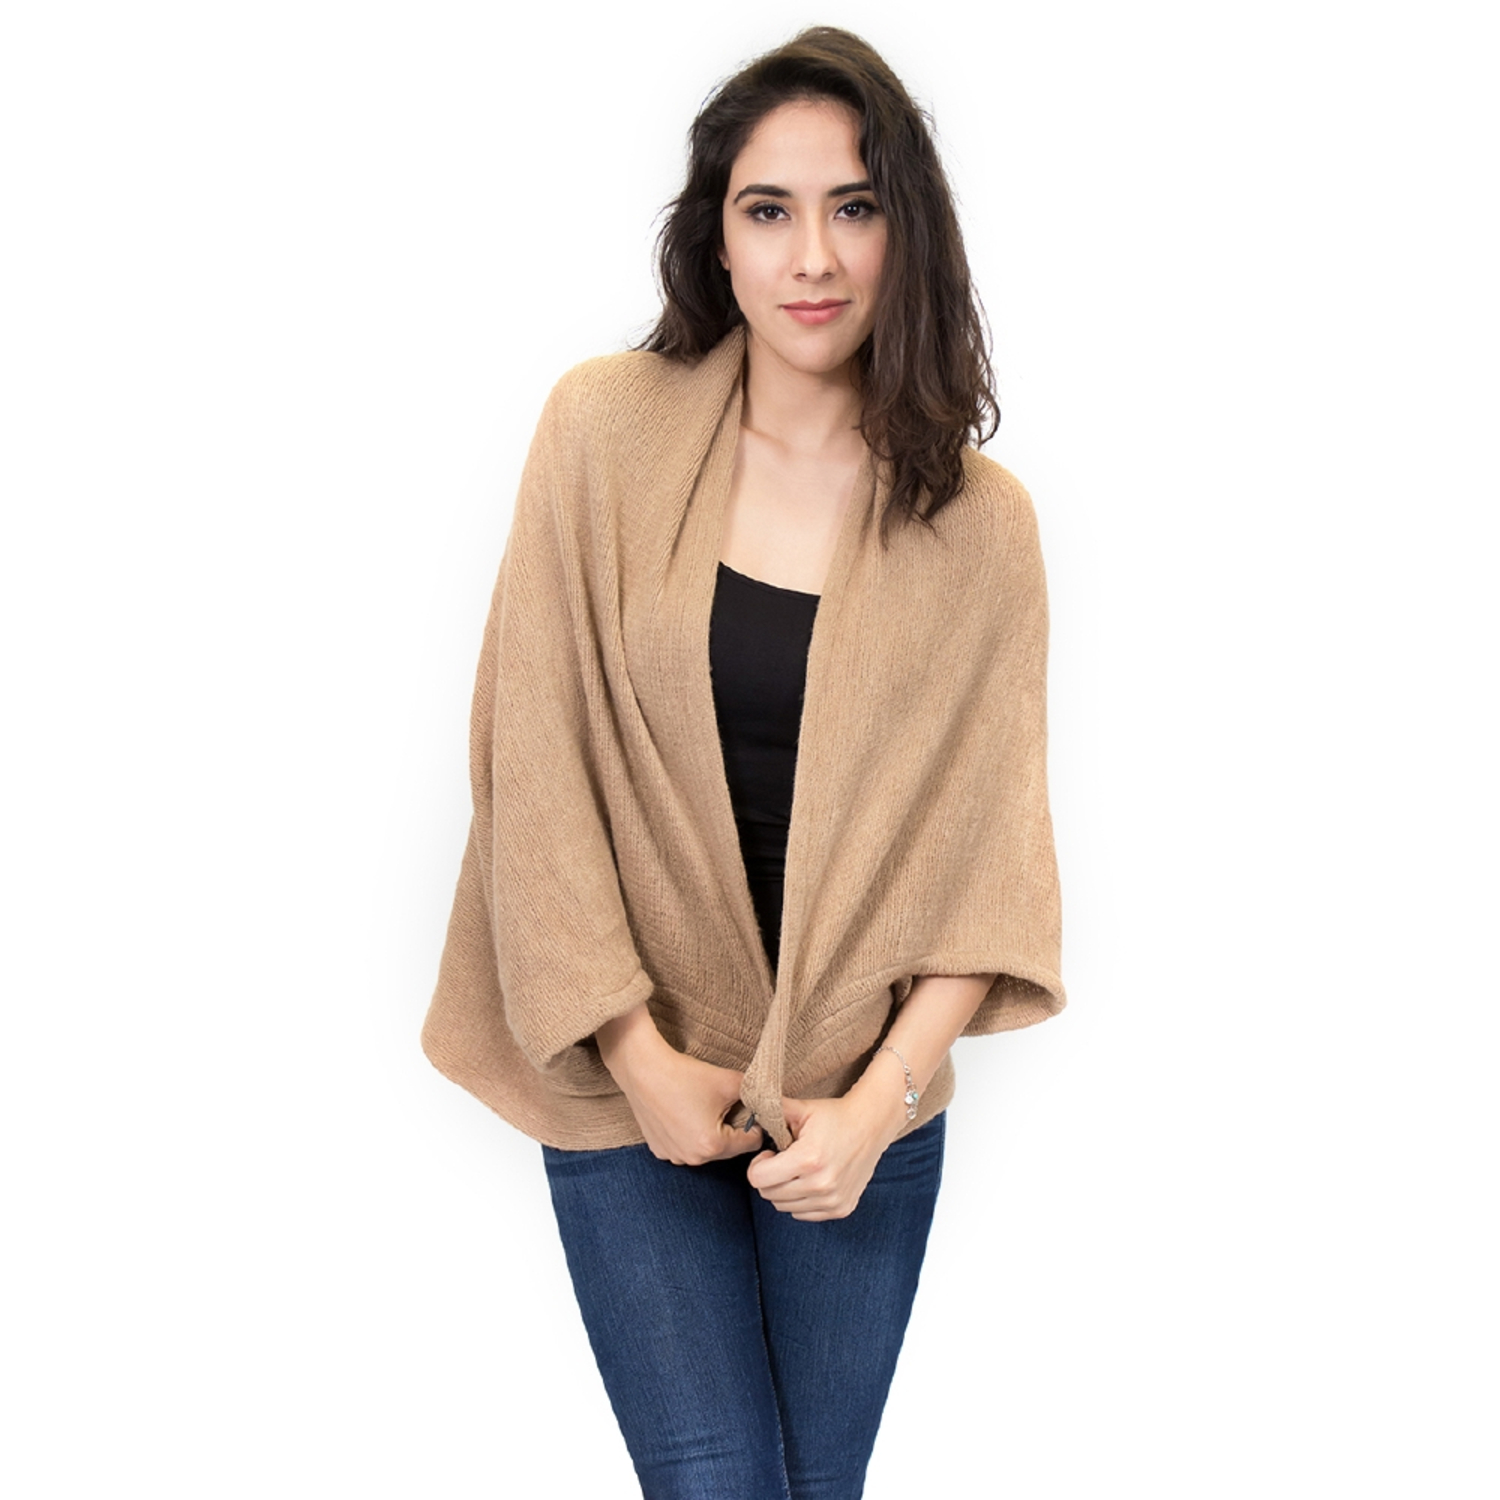 Zodaca Elegant Poncho Capes Shawl Cardigans Sweater Jacket Coat by Overstock